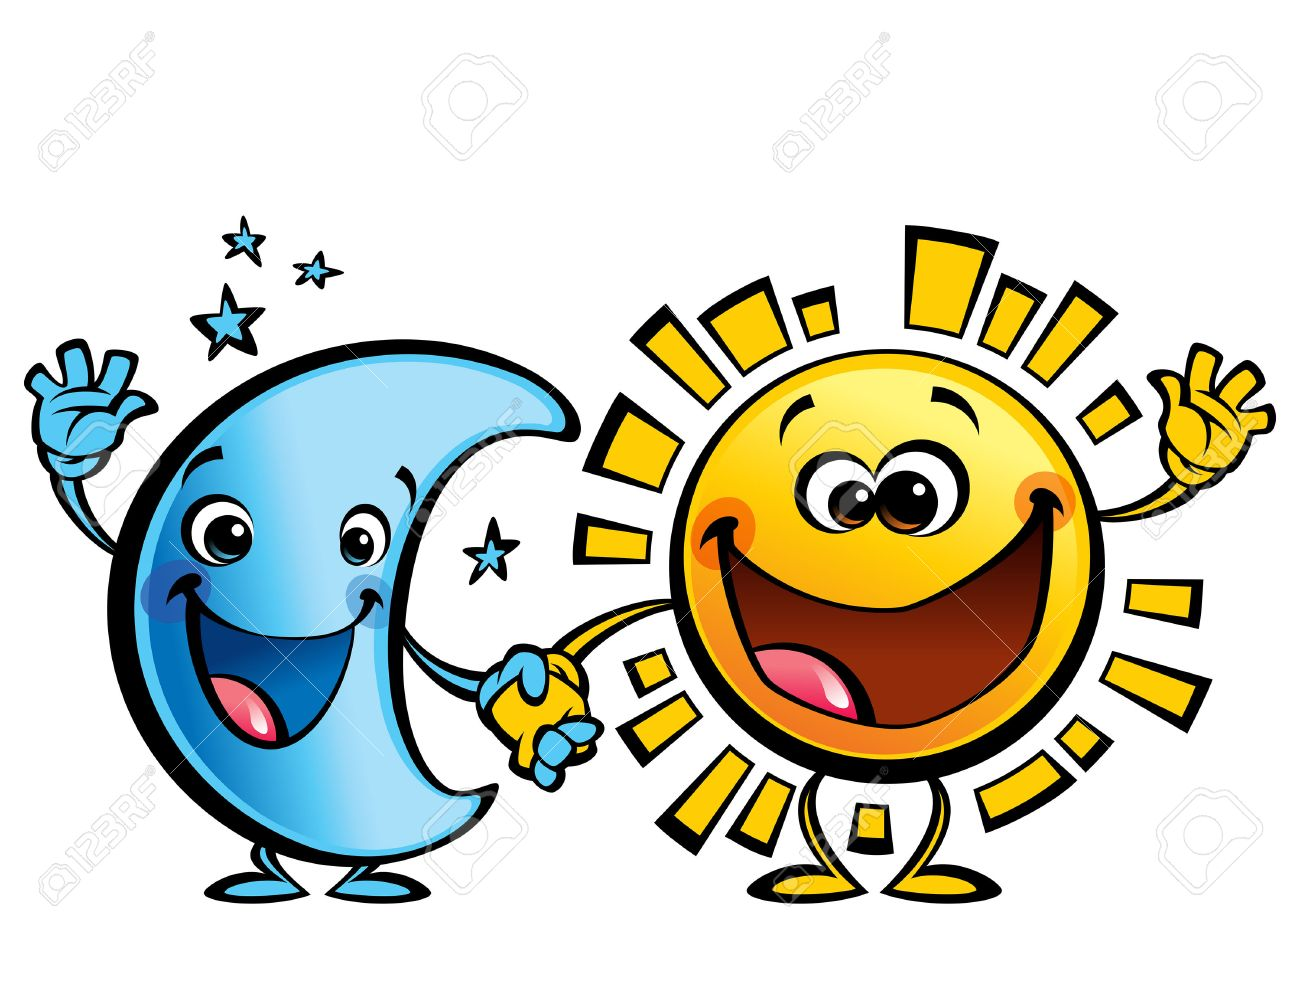 shining yellow smiling sun and blue moon cartoon characters a